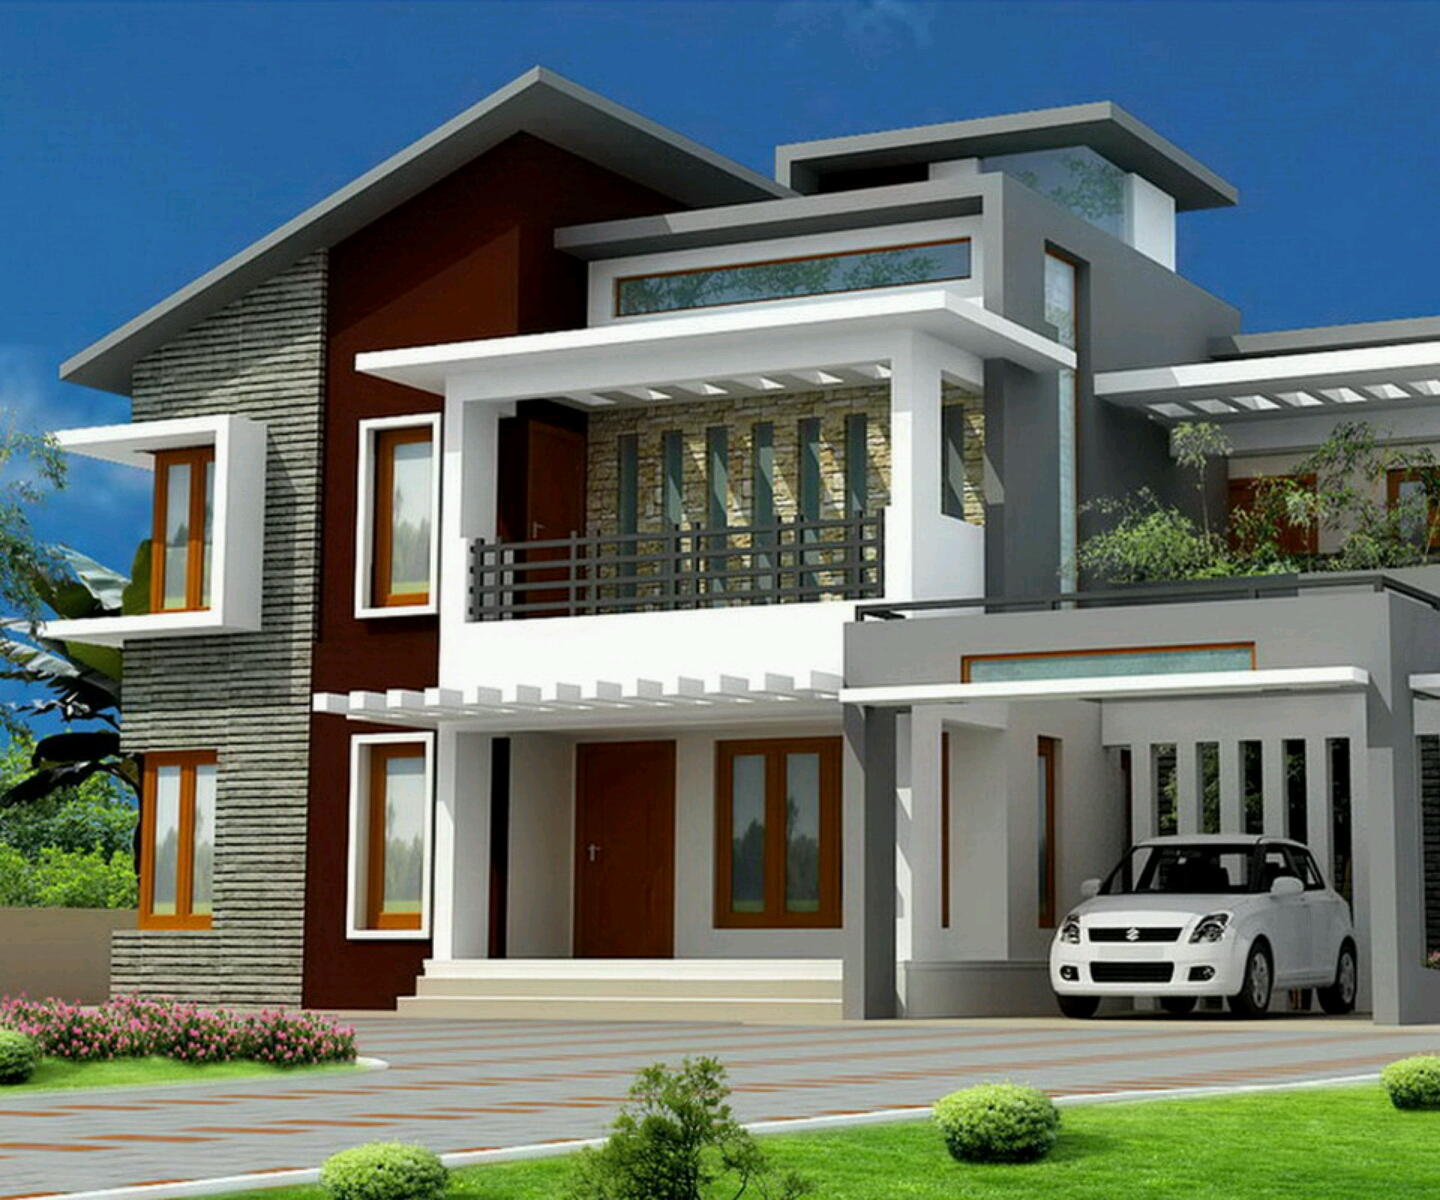 Outstanding Exterior House Design 1440 x 1200 · 1128 kB · jpeg